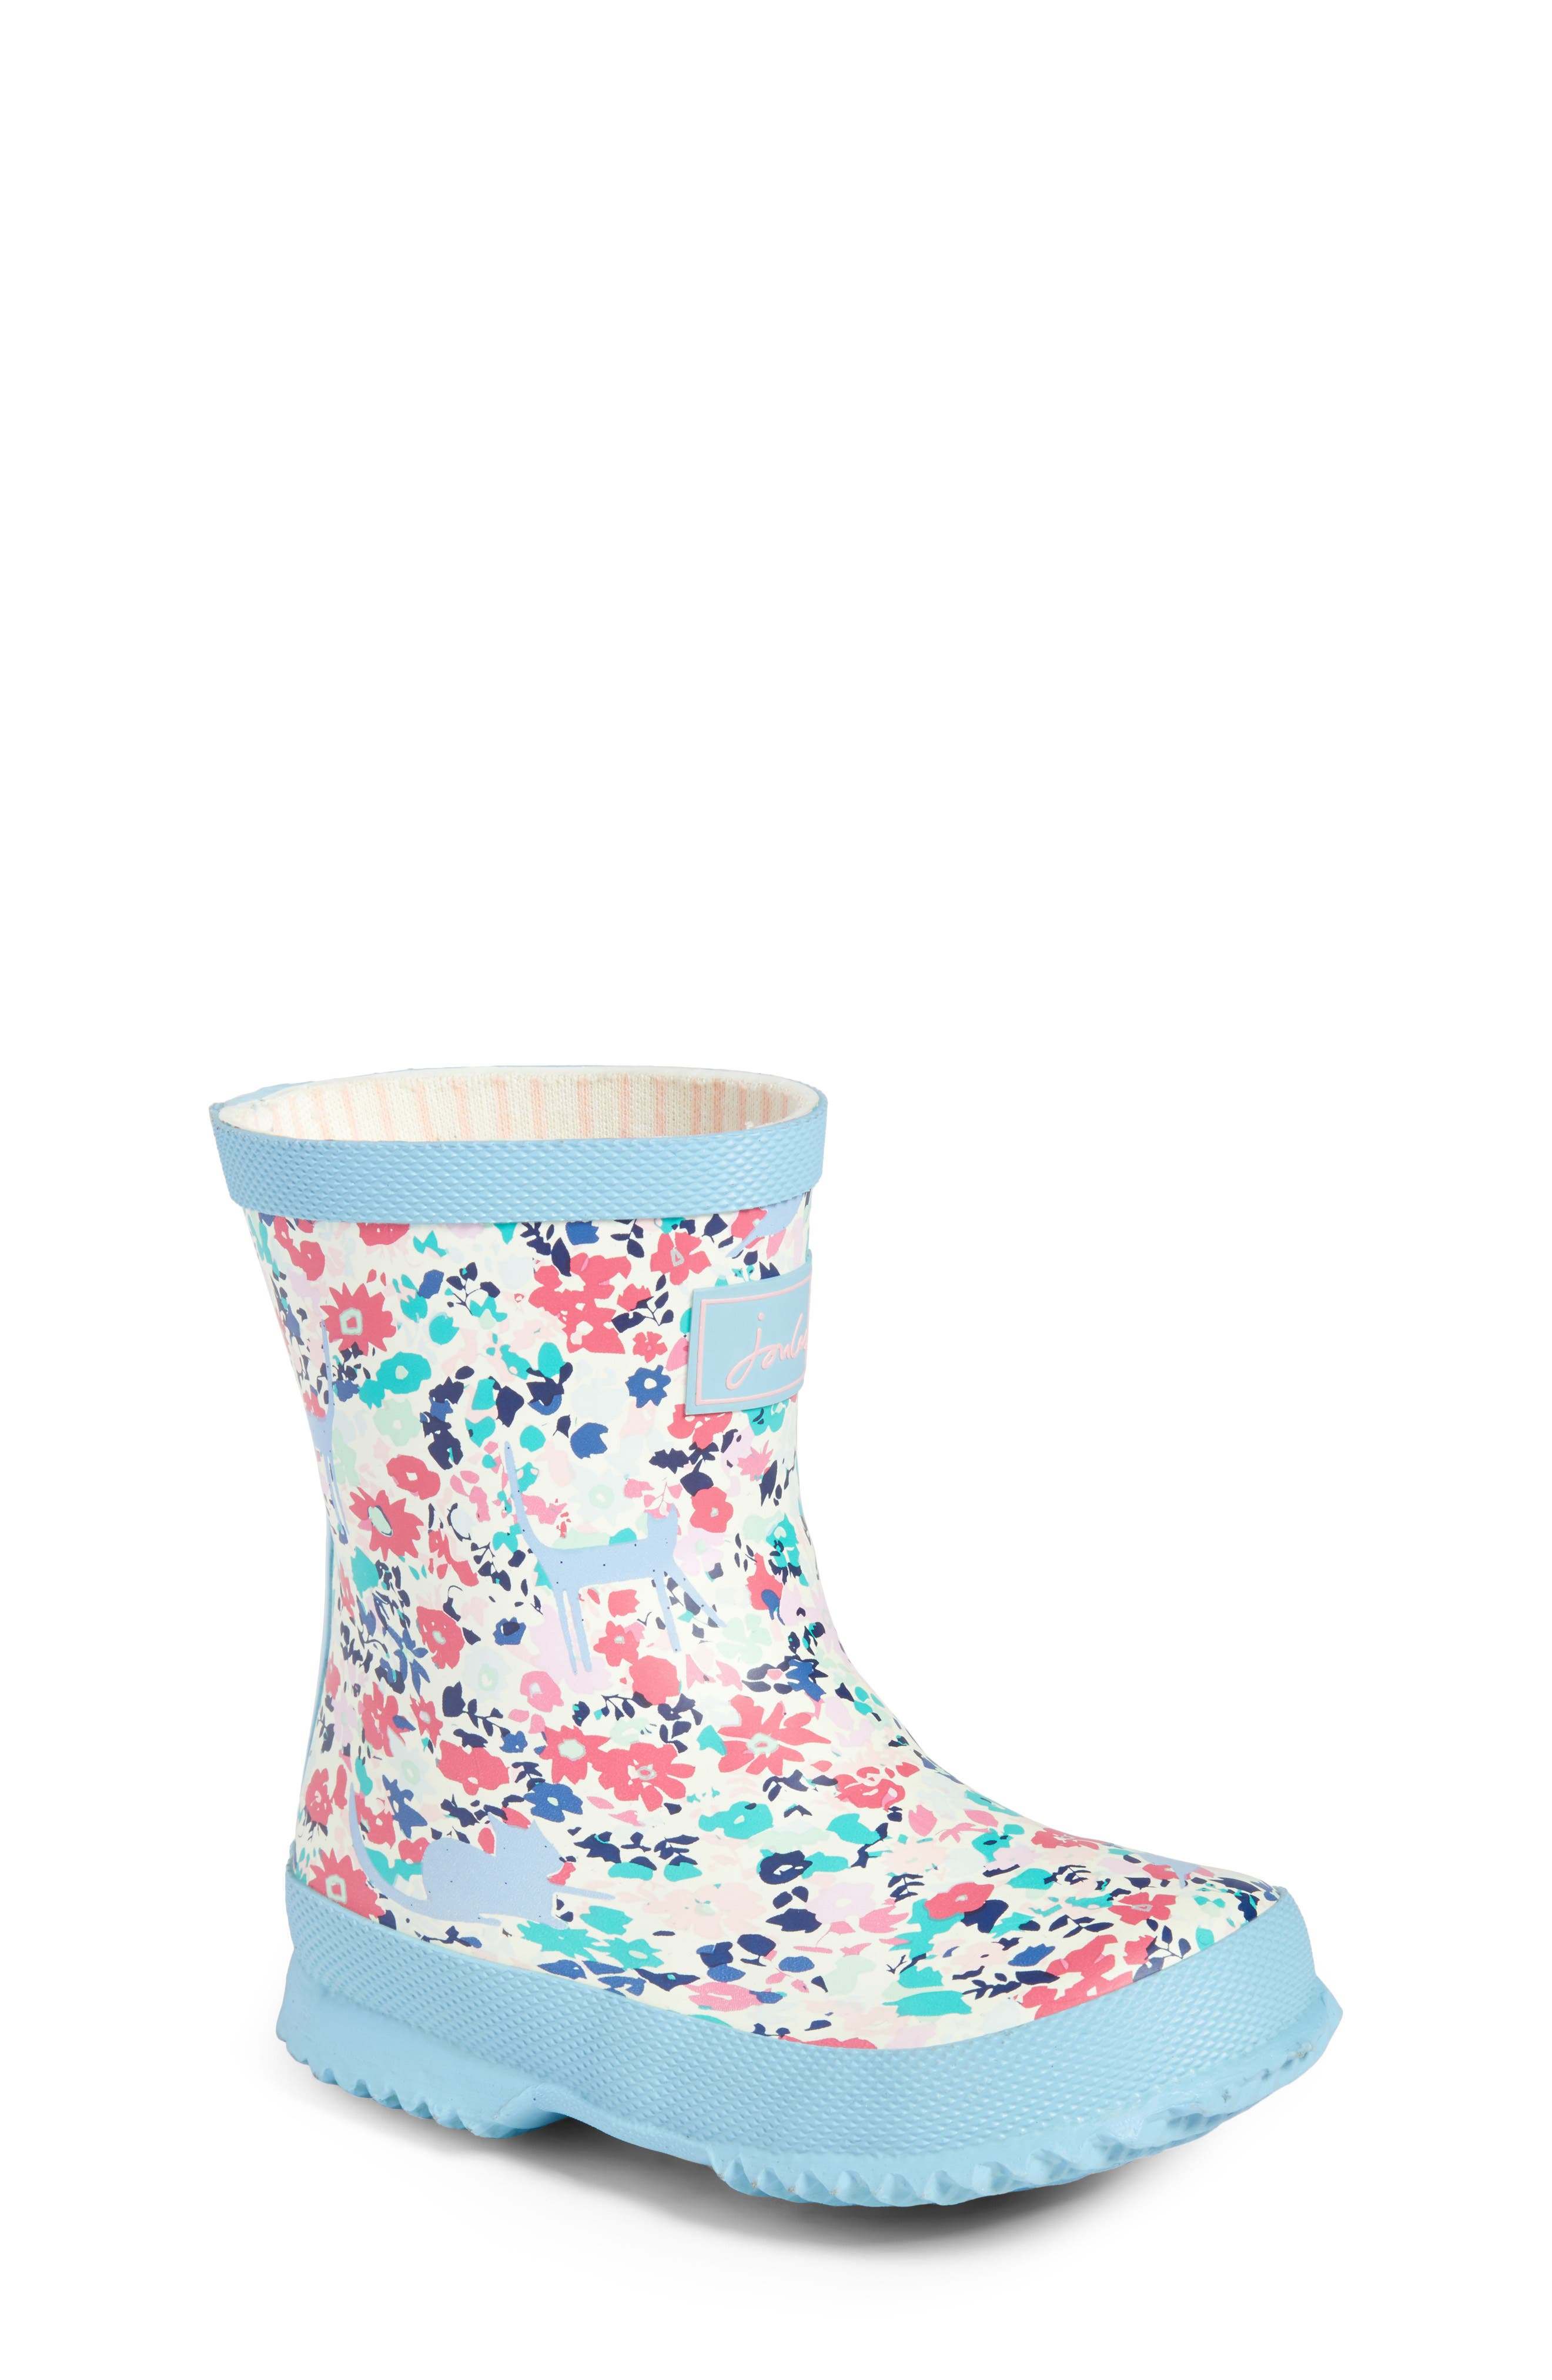 Baby Welly Print Waterproof Boot,                             Main thumbnail 1, color,                             Pretty Kitty Ditsy